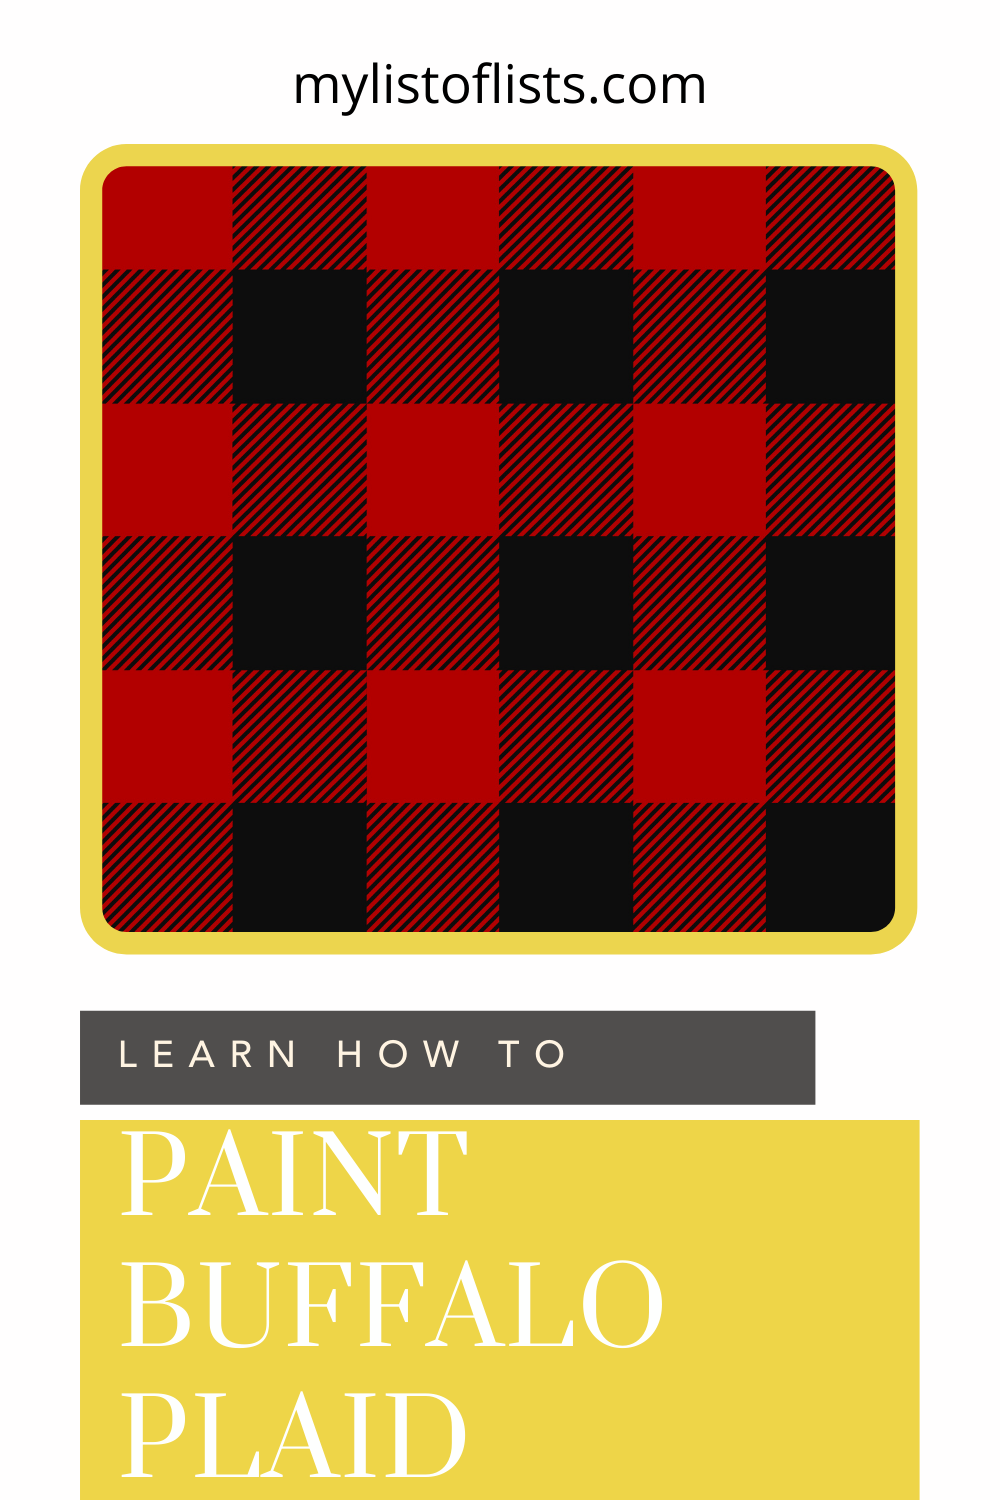 Mylistoflists.com will help you find whatever it is you're looking for. Learn to make things a little bit easier on yourself. Check out how to paint a cute buffalo plaid pattern!